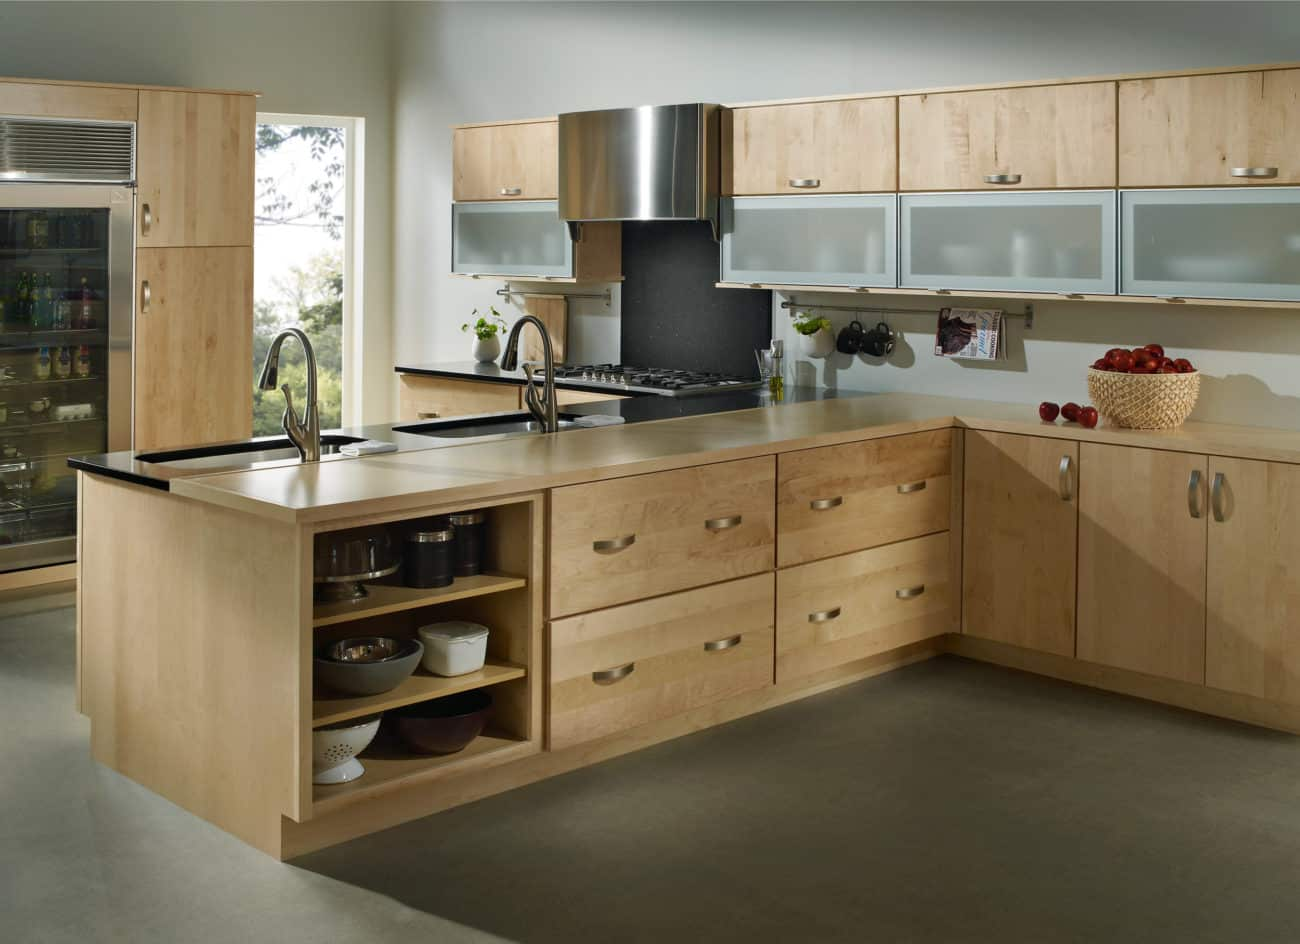 light wood kitchen cabinets - | aesops gables (505) 275-1804